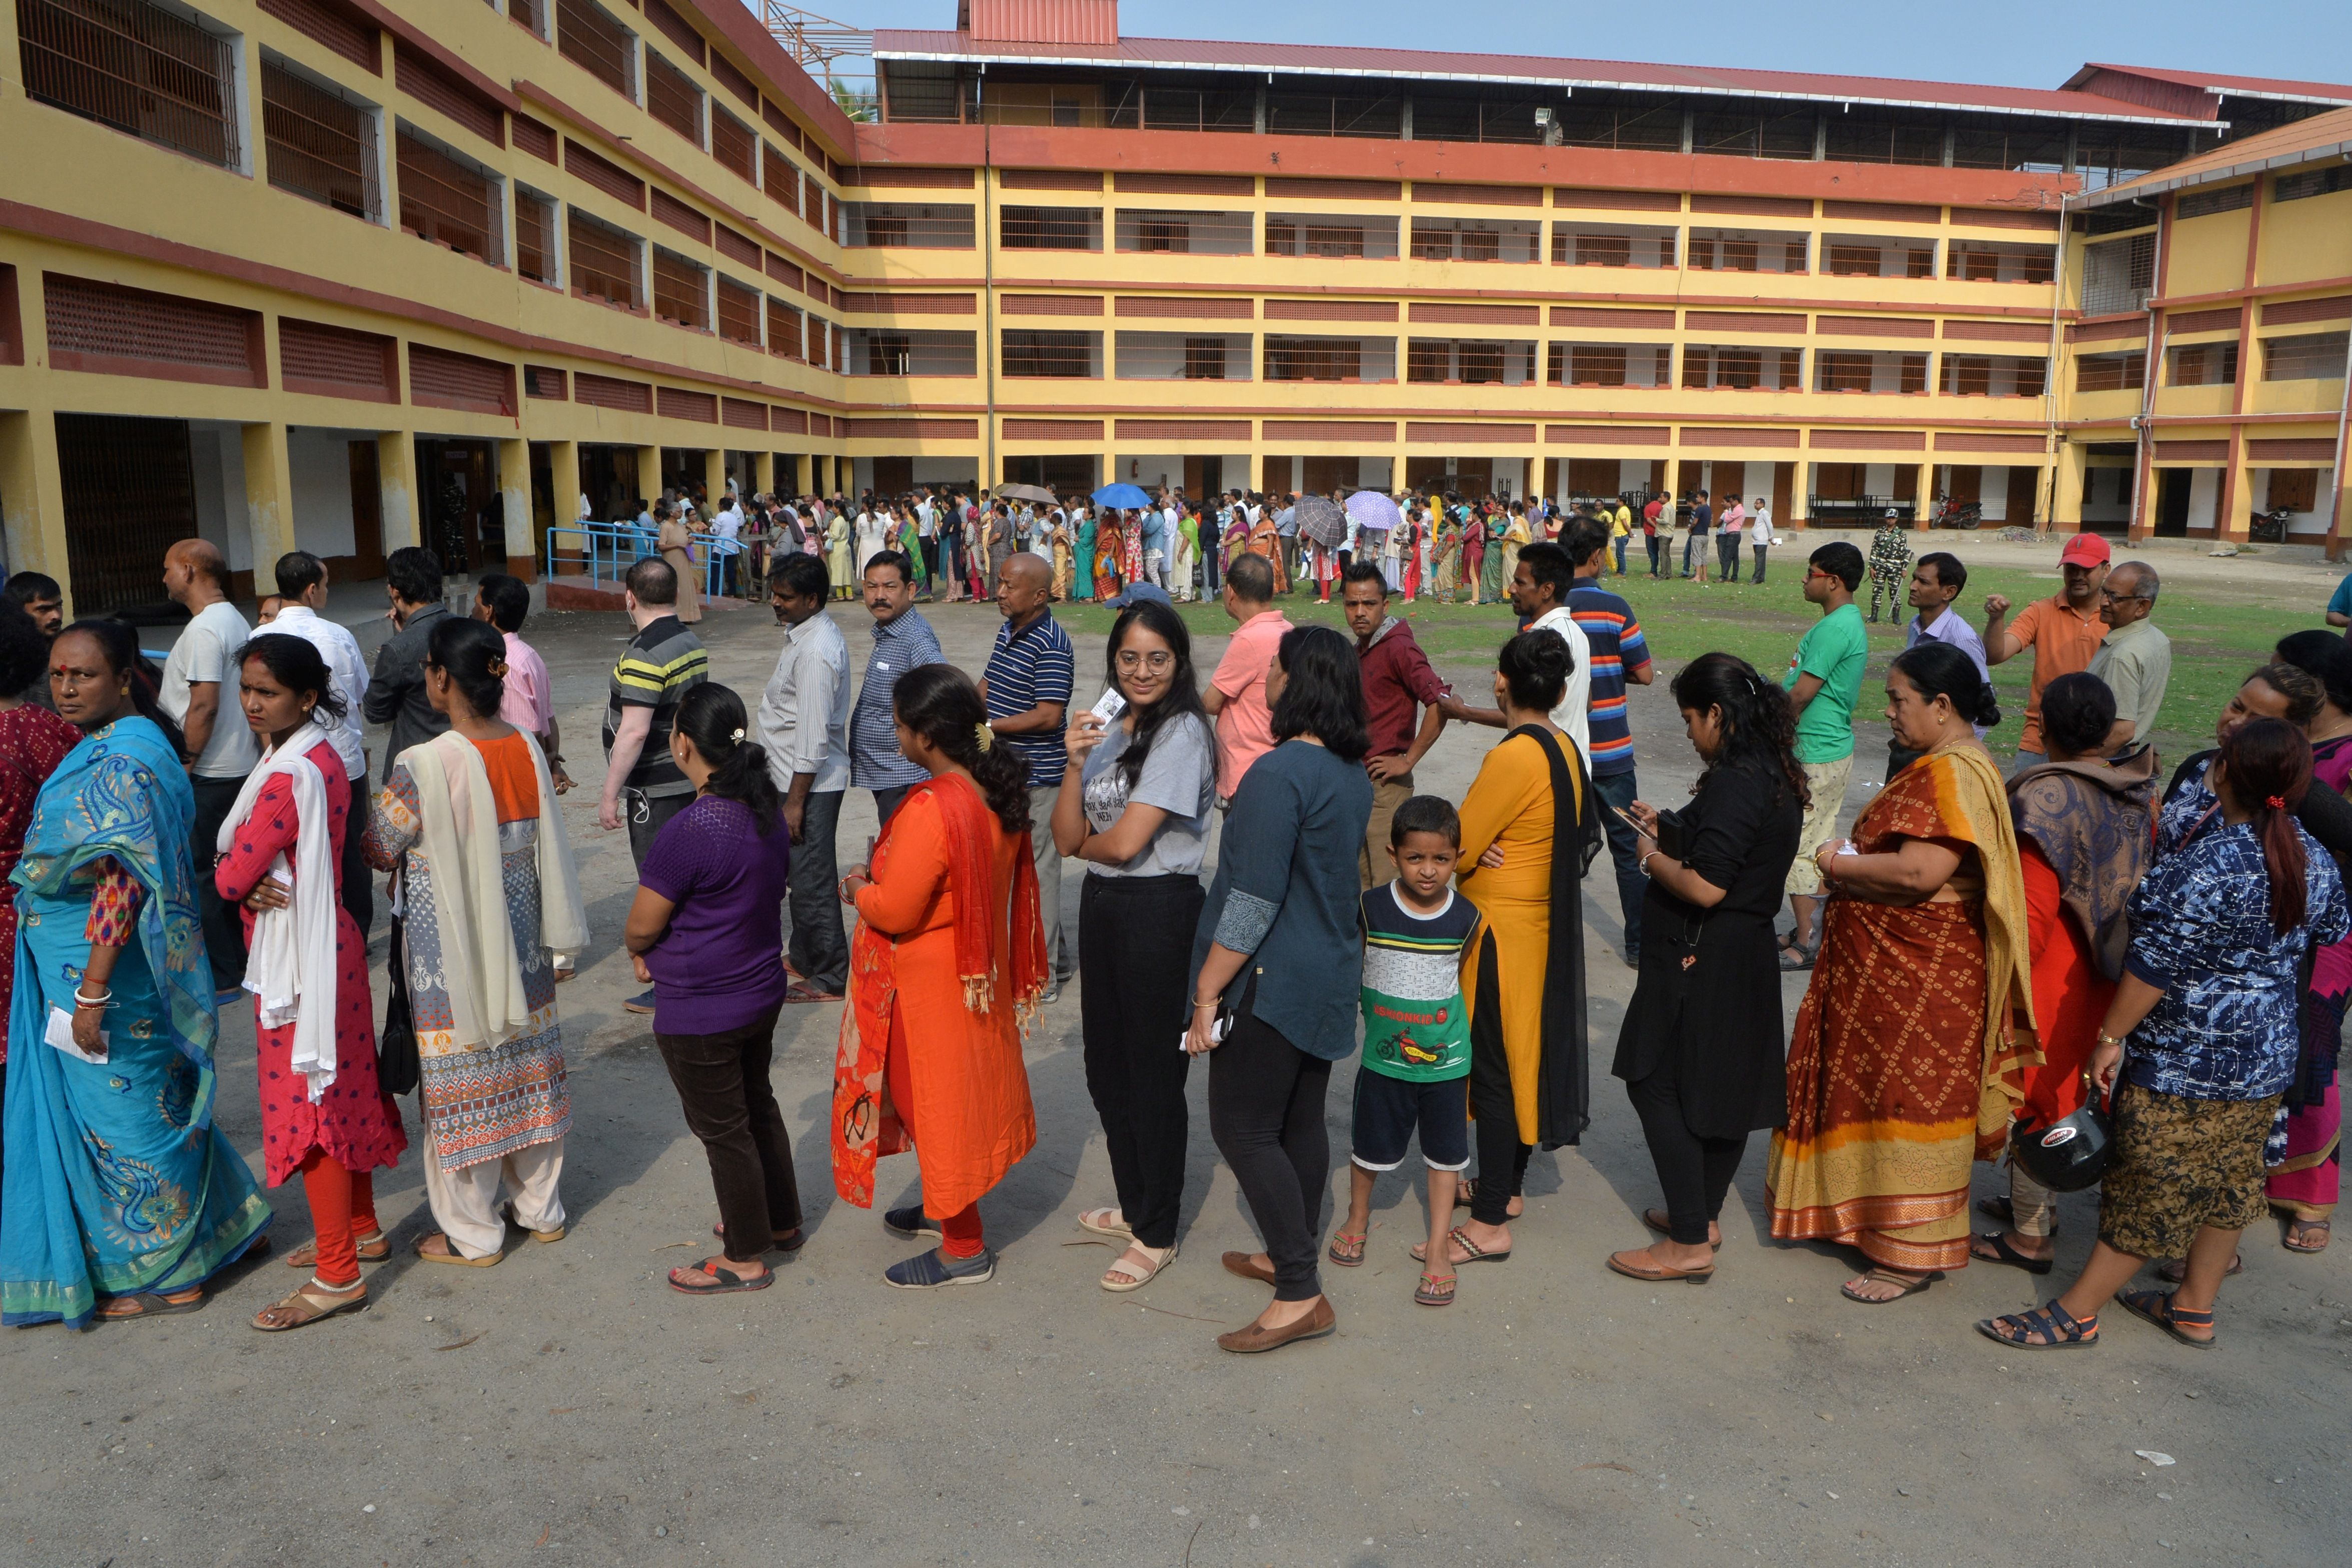 Indian voters queue up to cast their vote at a polling station in Siliguri, West Bengal.